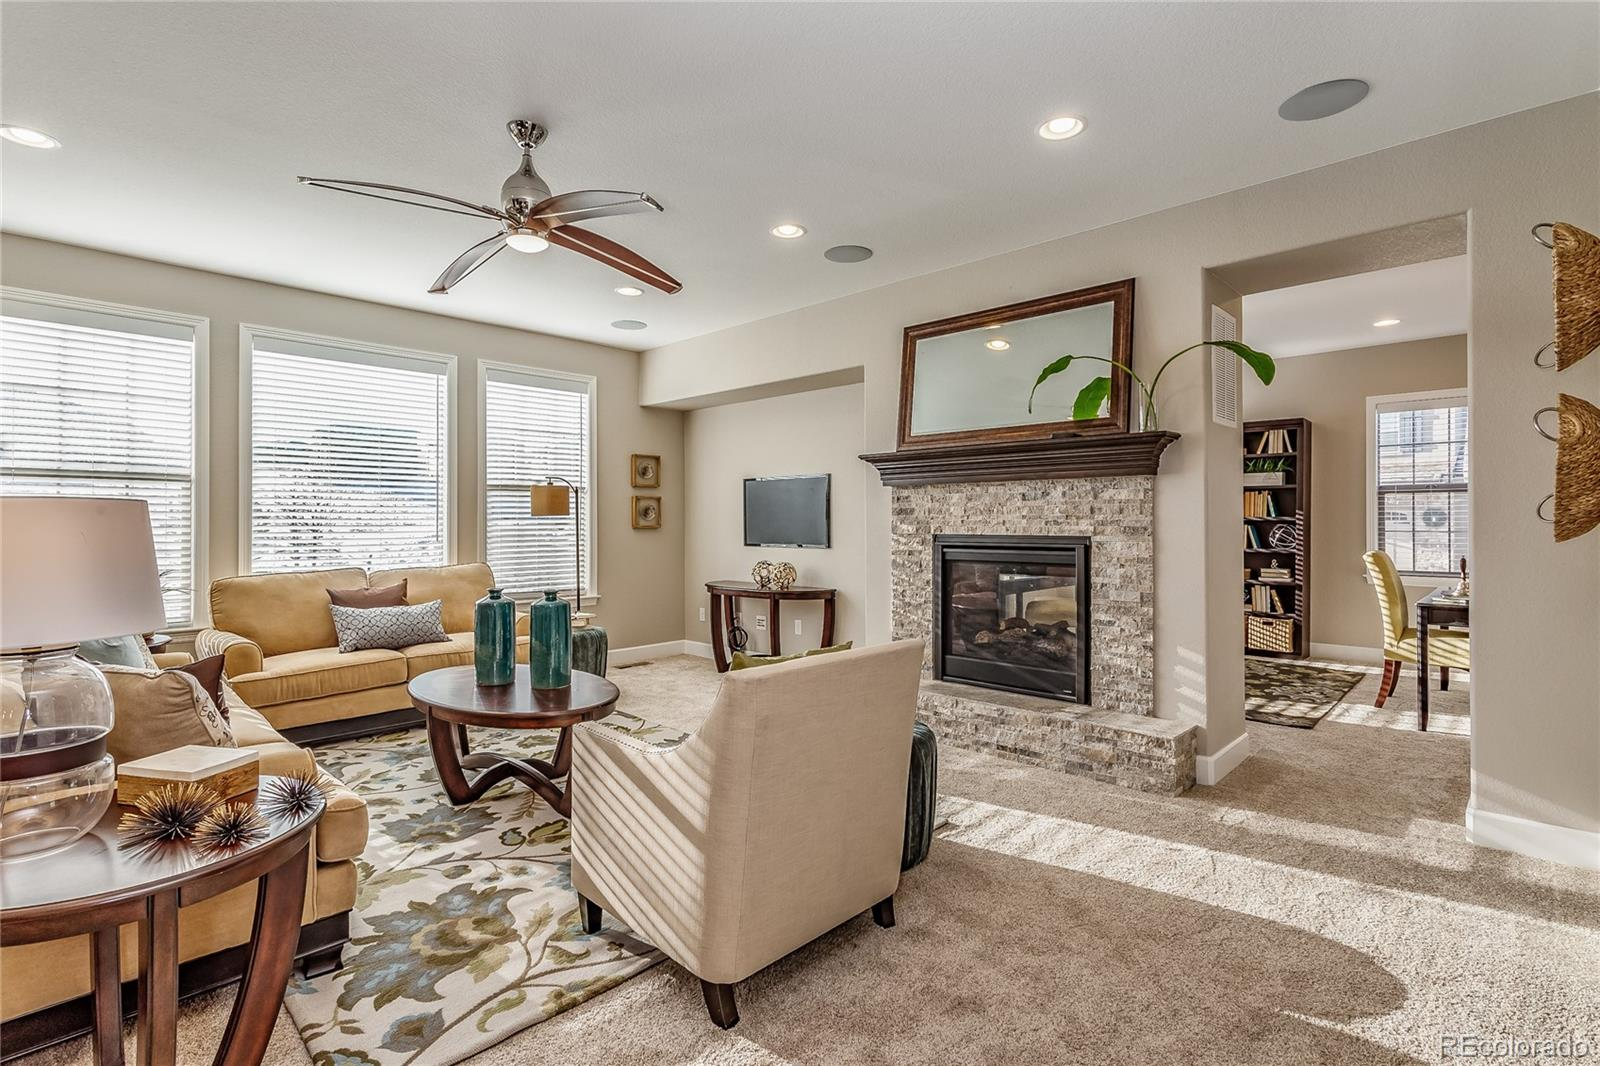 MLS# 3599315 - 10 - 10675 Greycliffe Drive, Highlands Ranch, CO 80126